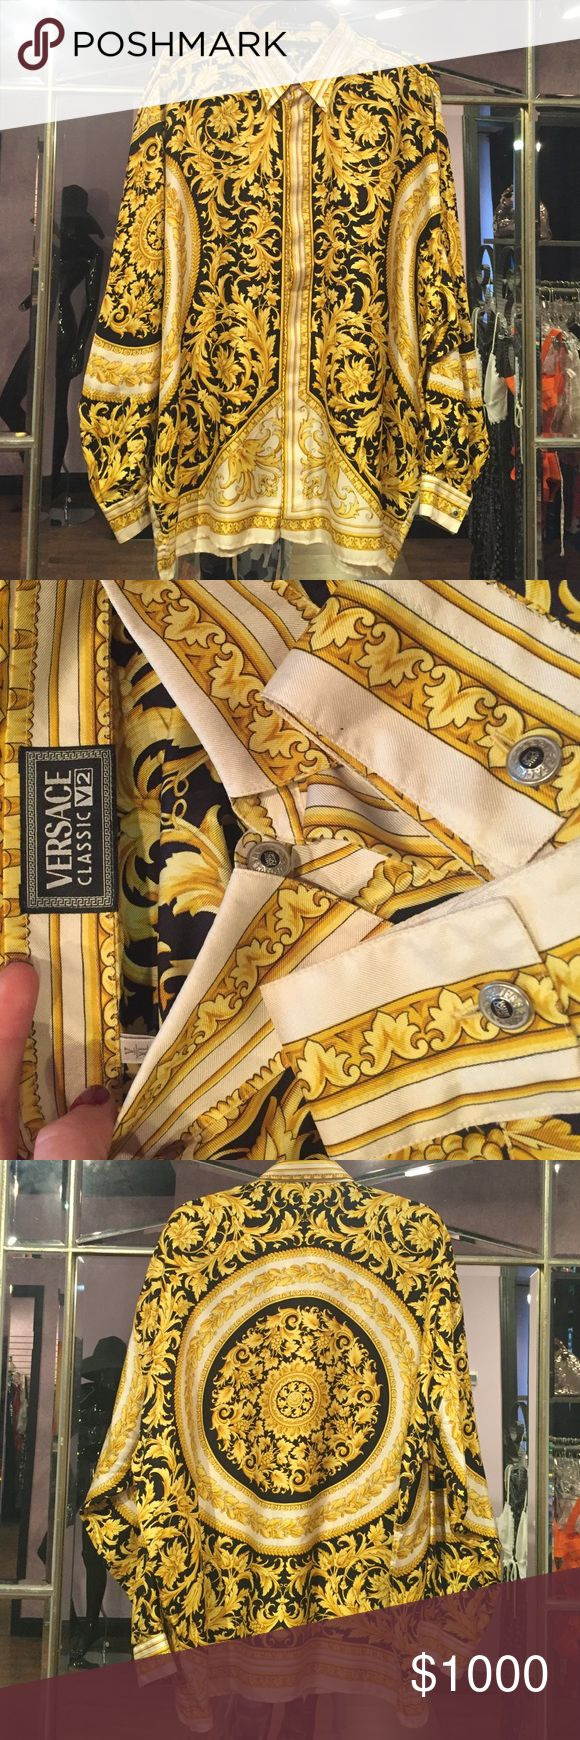 ⚜️ Versace Vintage Silk Shirt In perfect flawless condition authentic Versace %100 Silk Shirt. Size XL ⚜️ Versace Shirts Dress Shirts